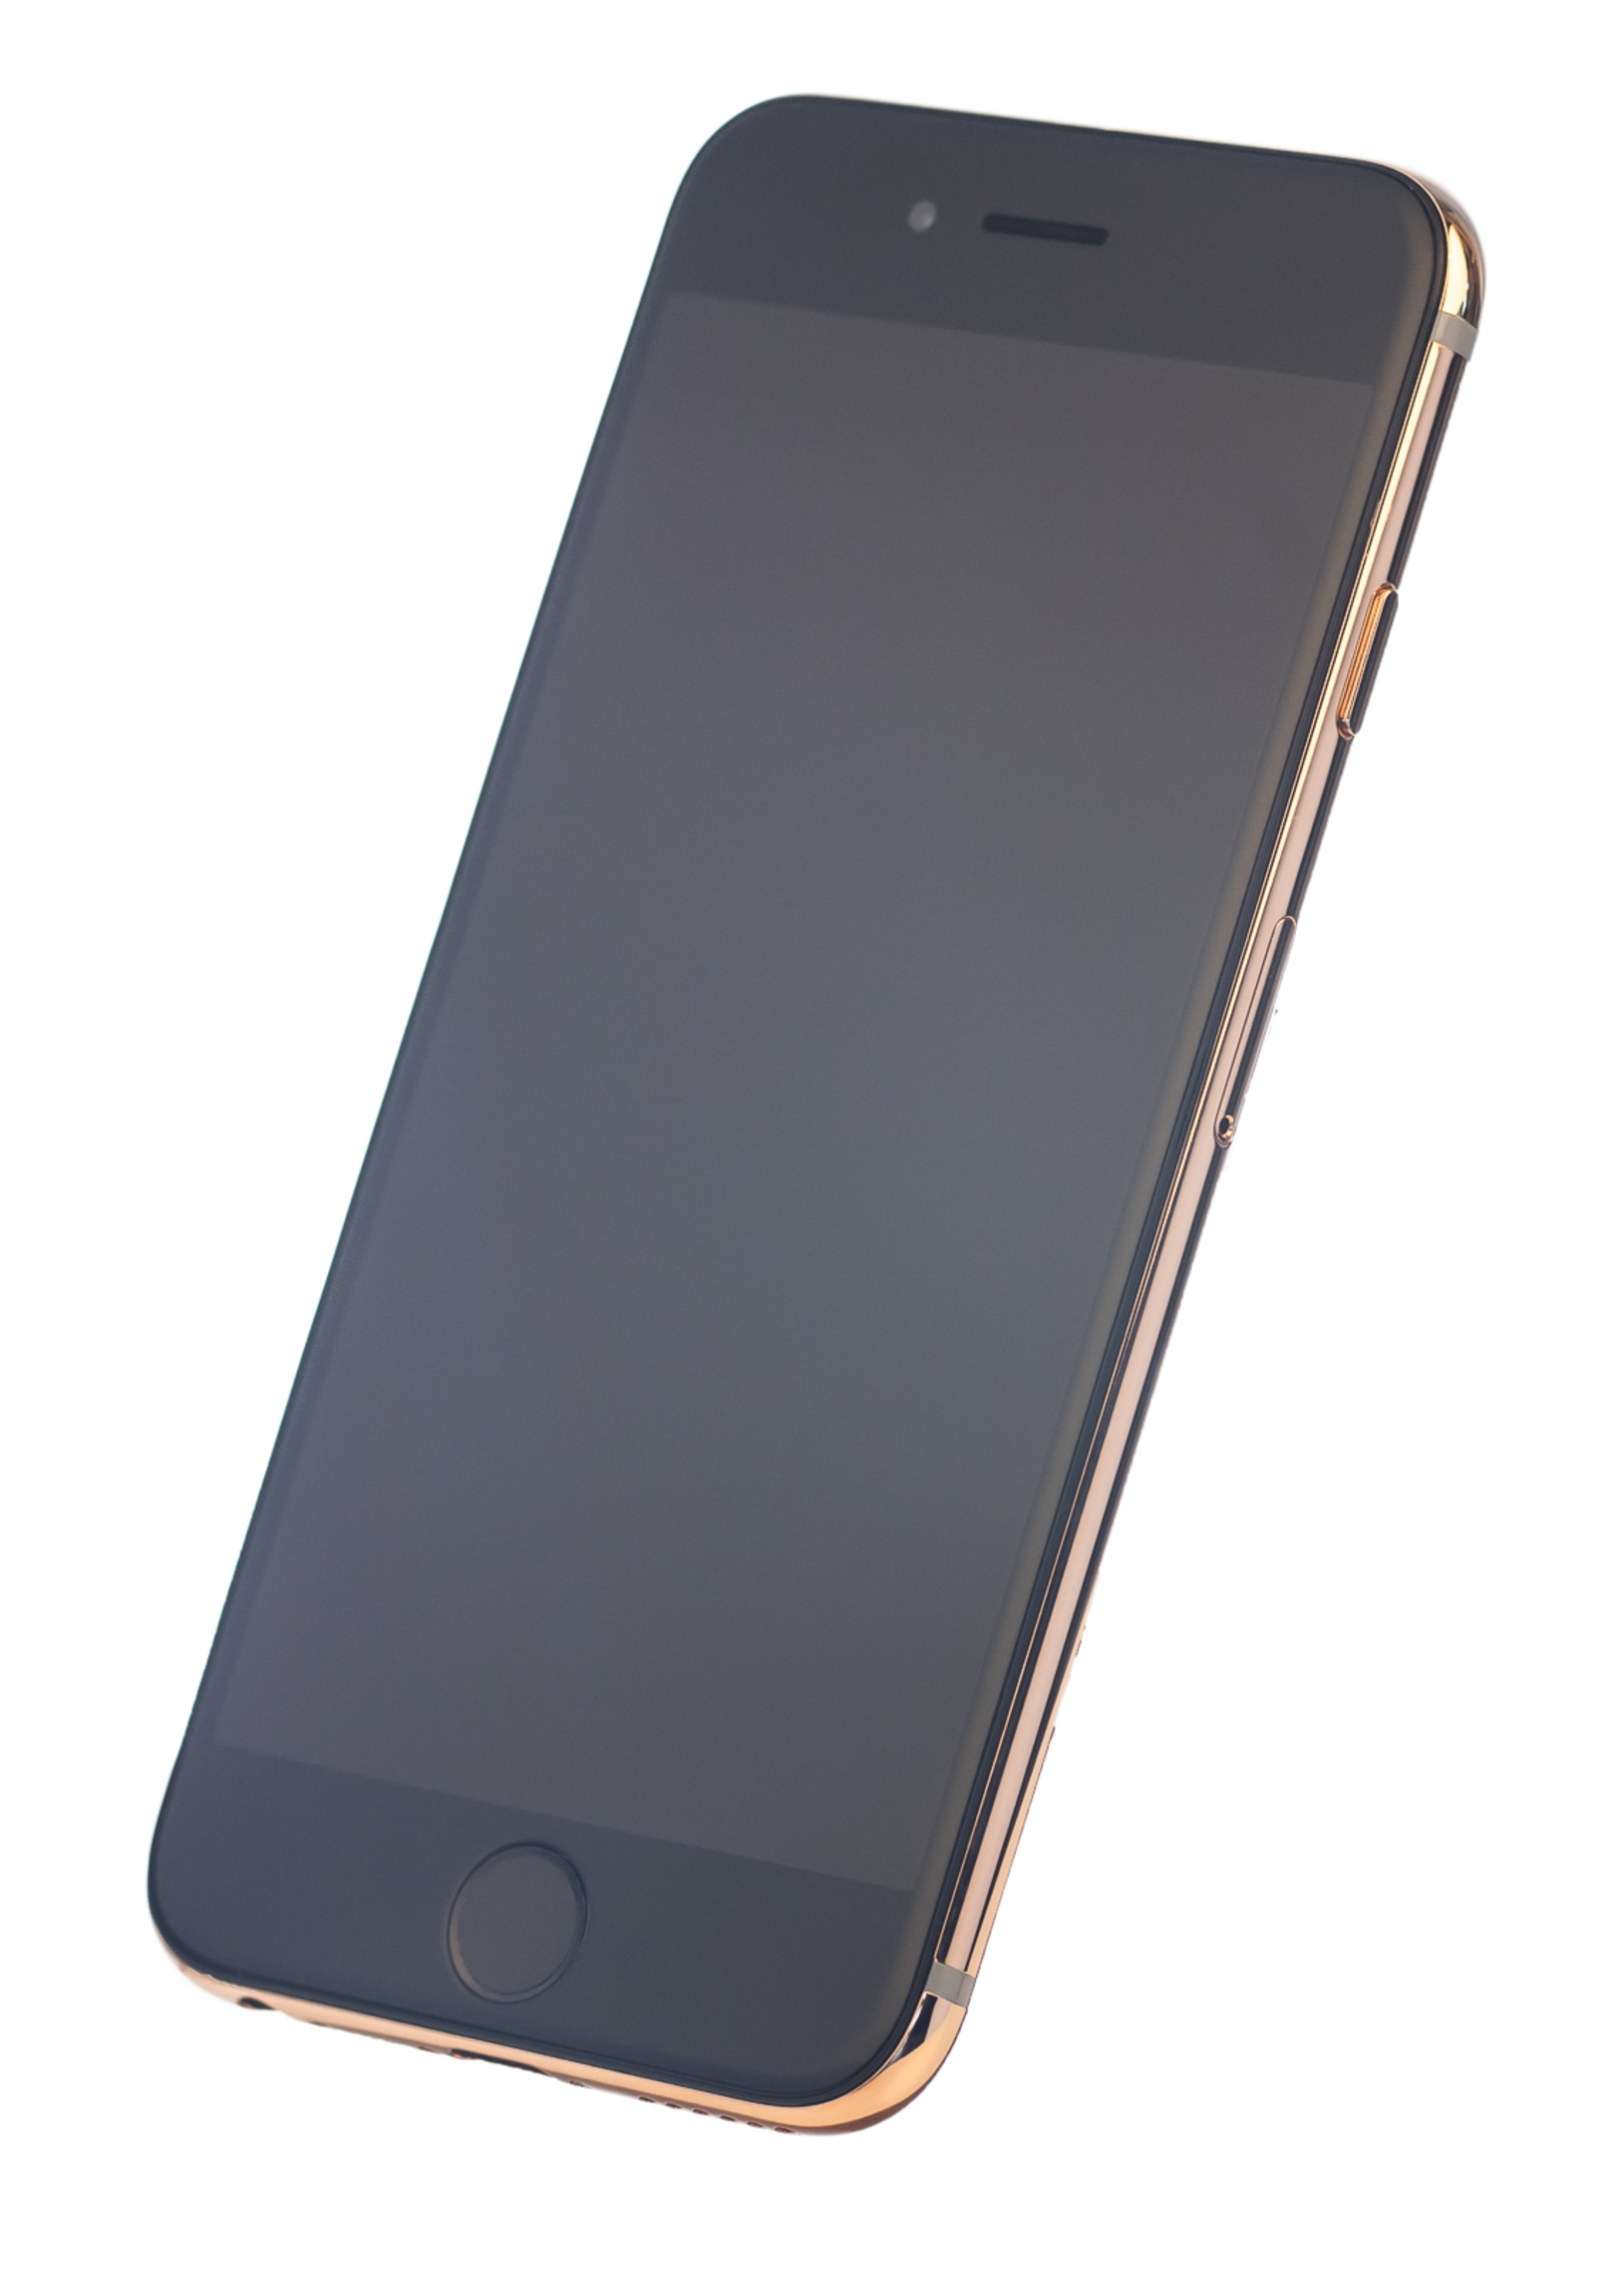 18ct Rose Gold iPhone 6s Plus (By Julian Monroe London)